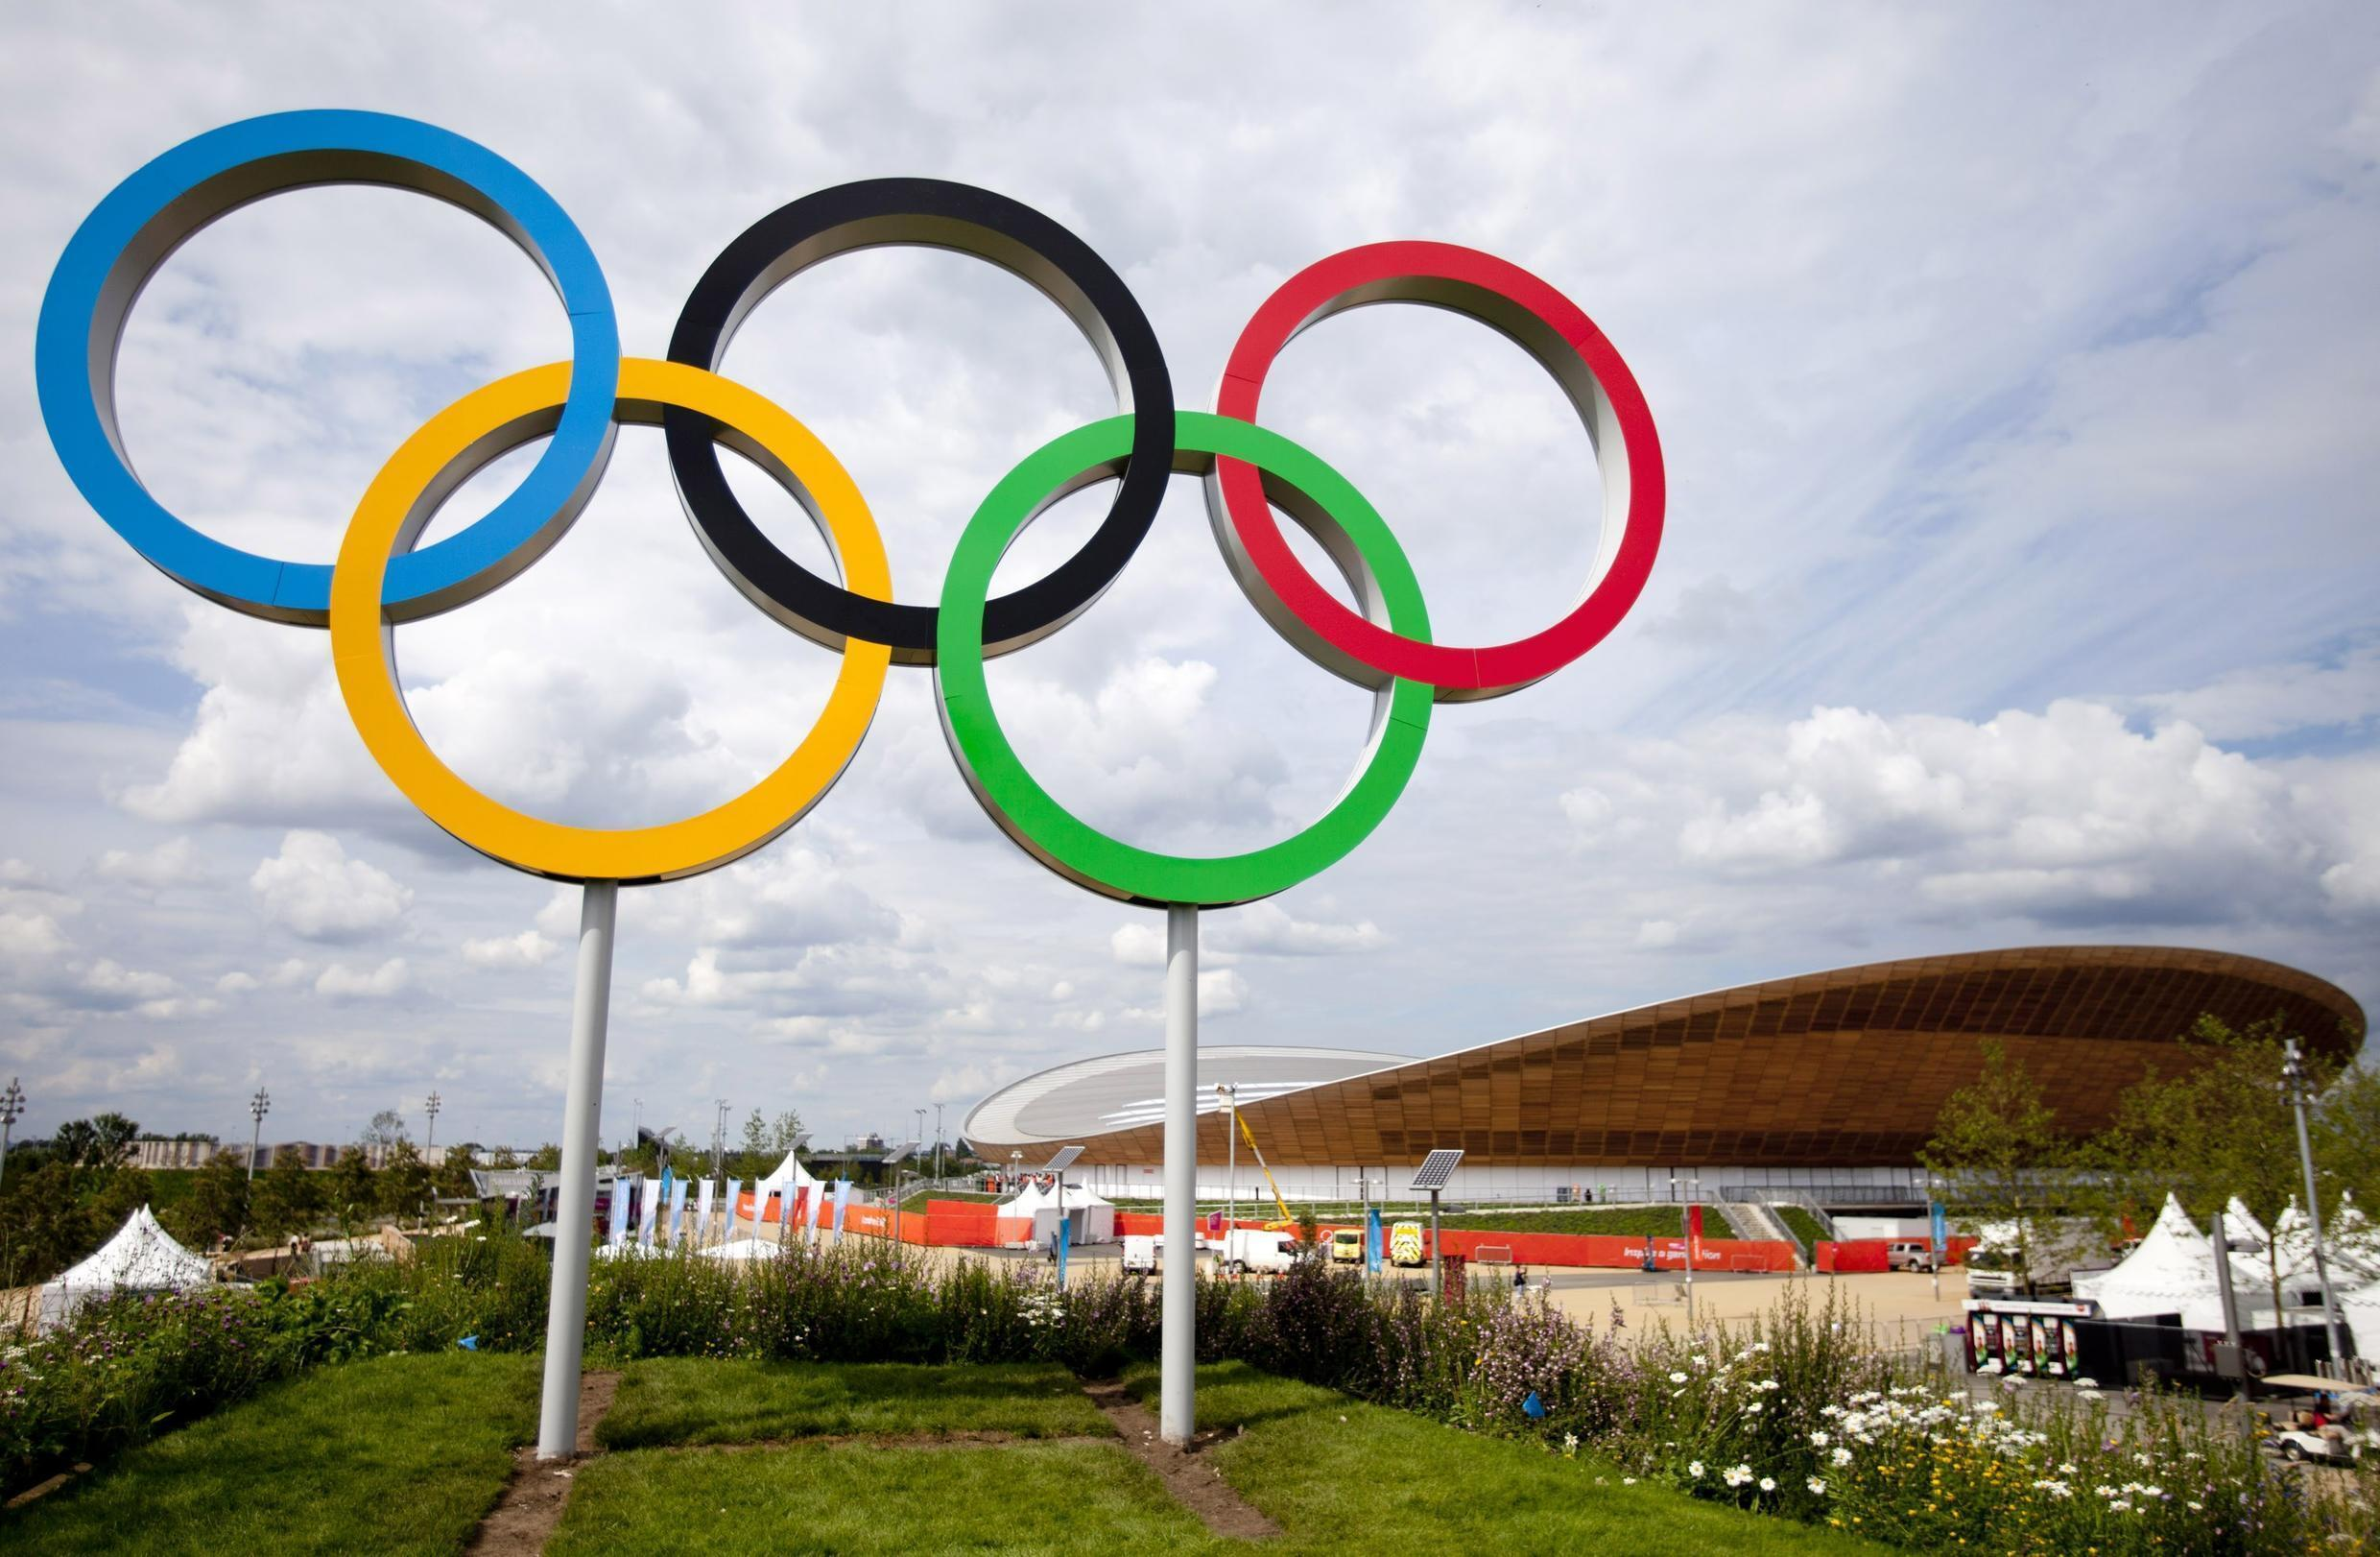 The Olympic rings welcome fans to the London Olympics